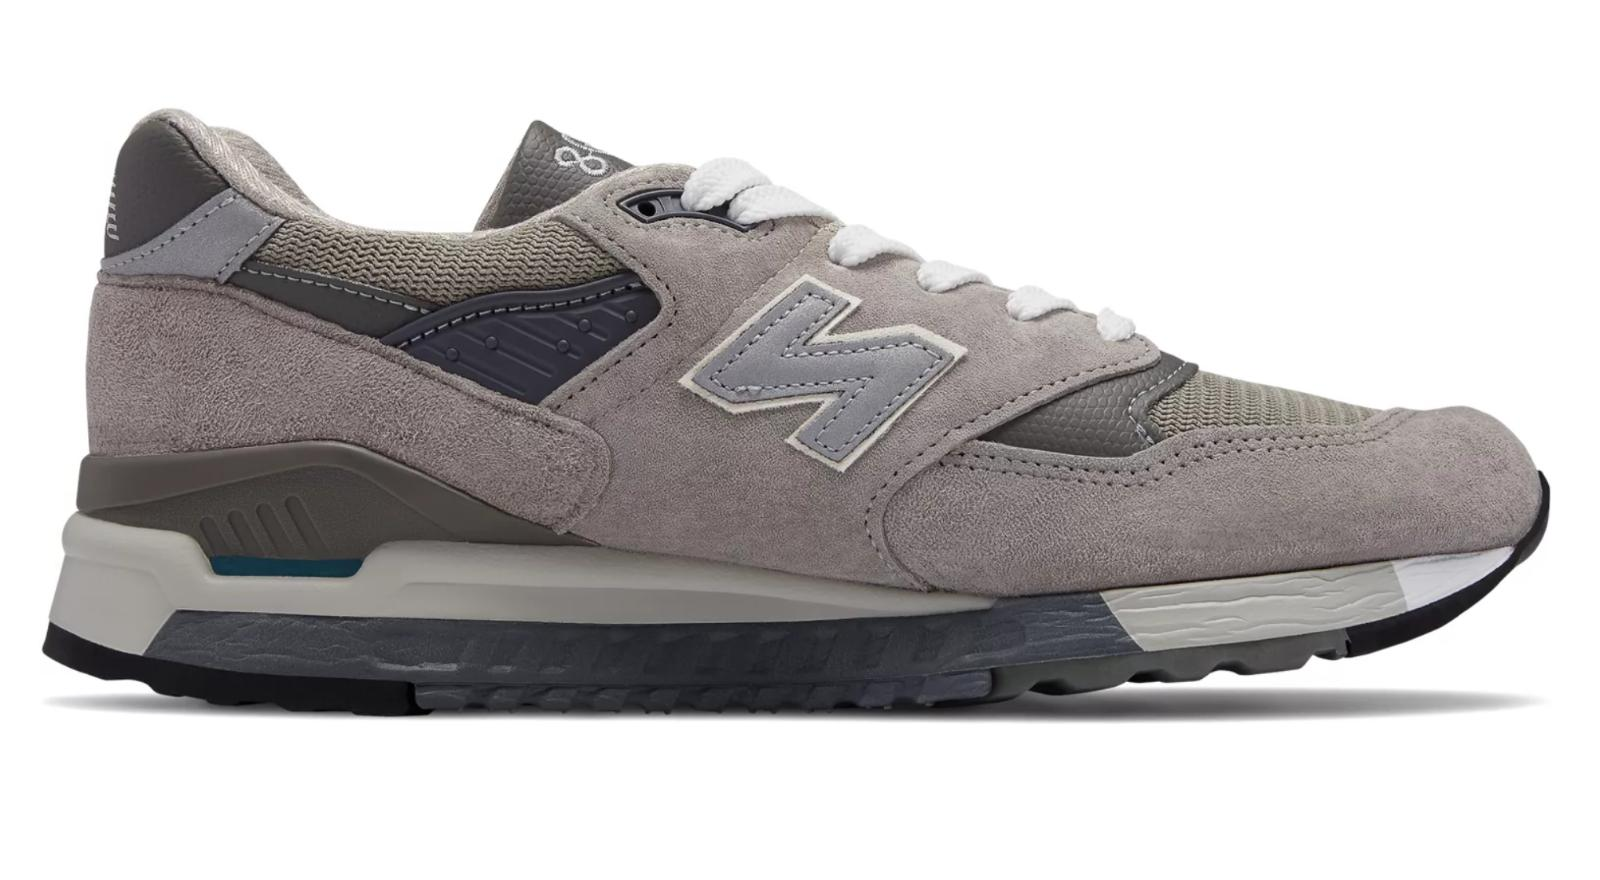 New Men's New 998 Made in Shoes Sneakers 11.5 Wide